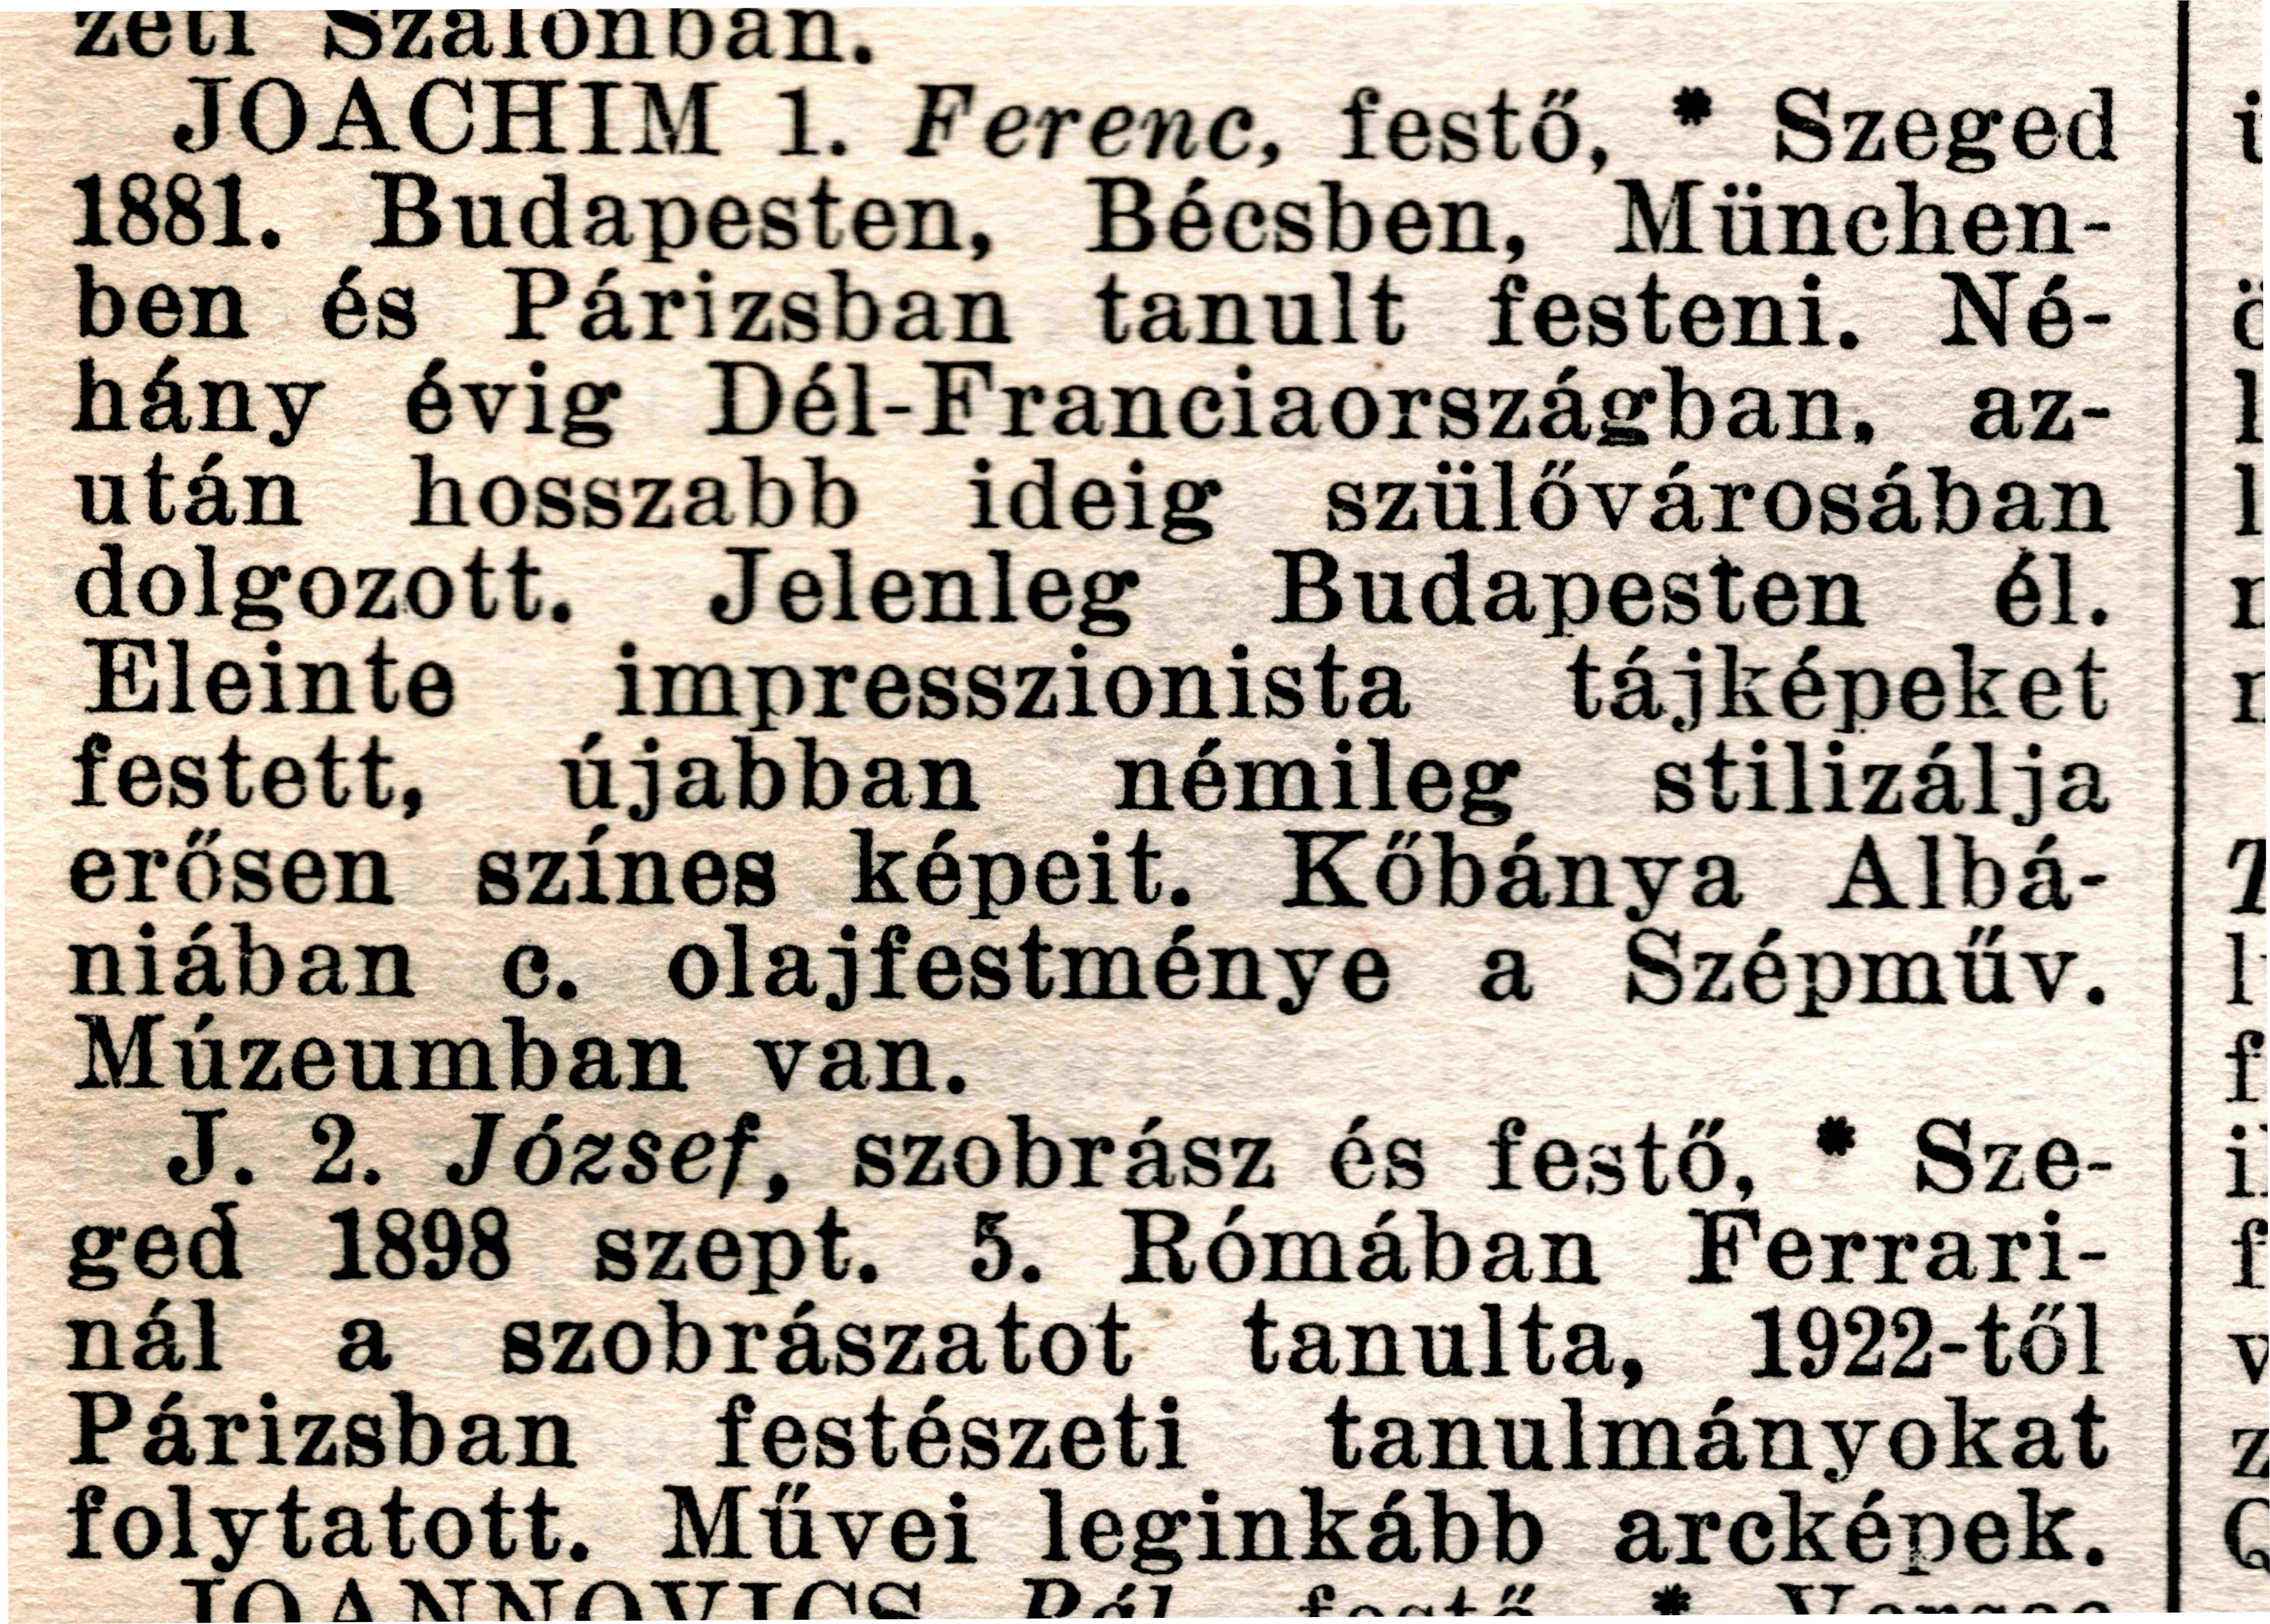 brief description of hungary Brief history of ottoman empire :  louis of baden, and eugene of savoy ended in negotiations in 1699 which cost turkey hungary and other territories.